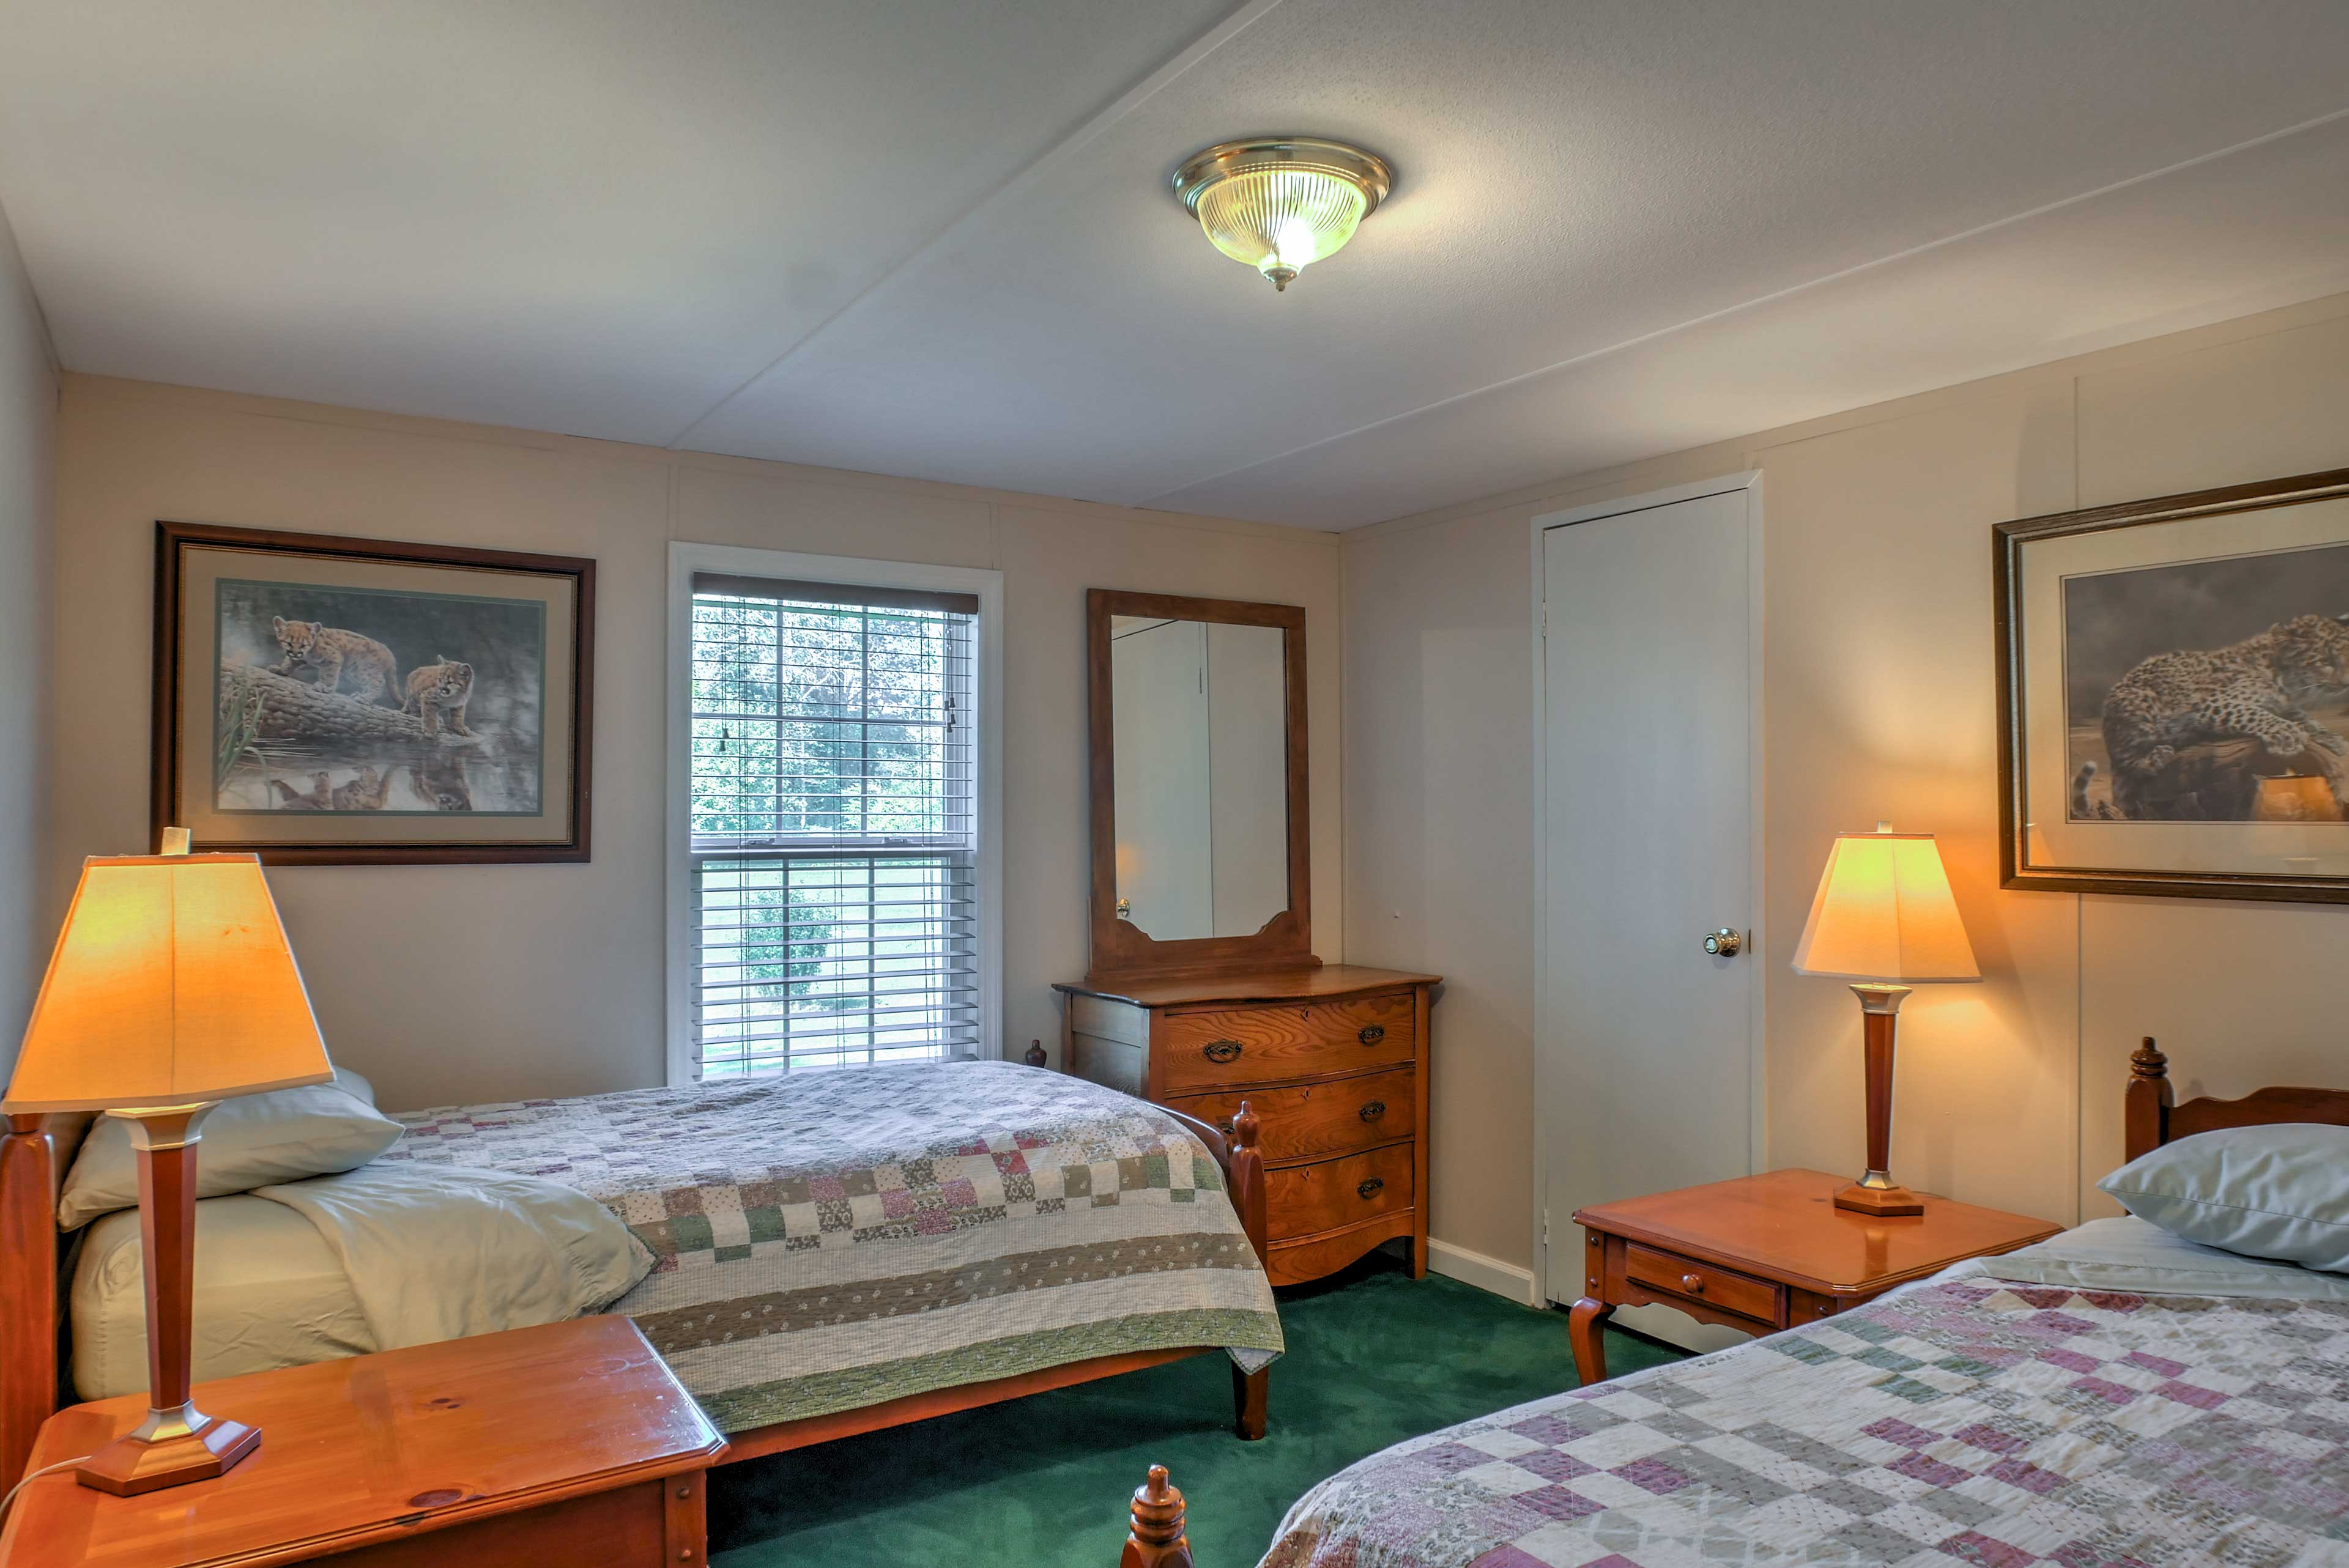 The third bedroom hosts 2 twin beds topped with colorful quilts.